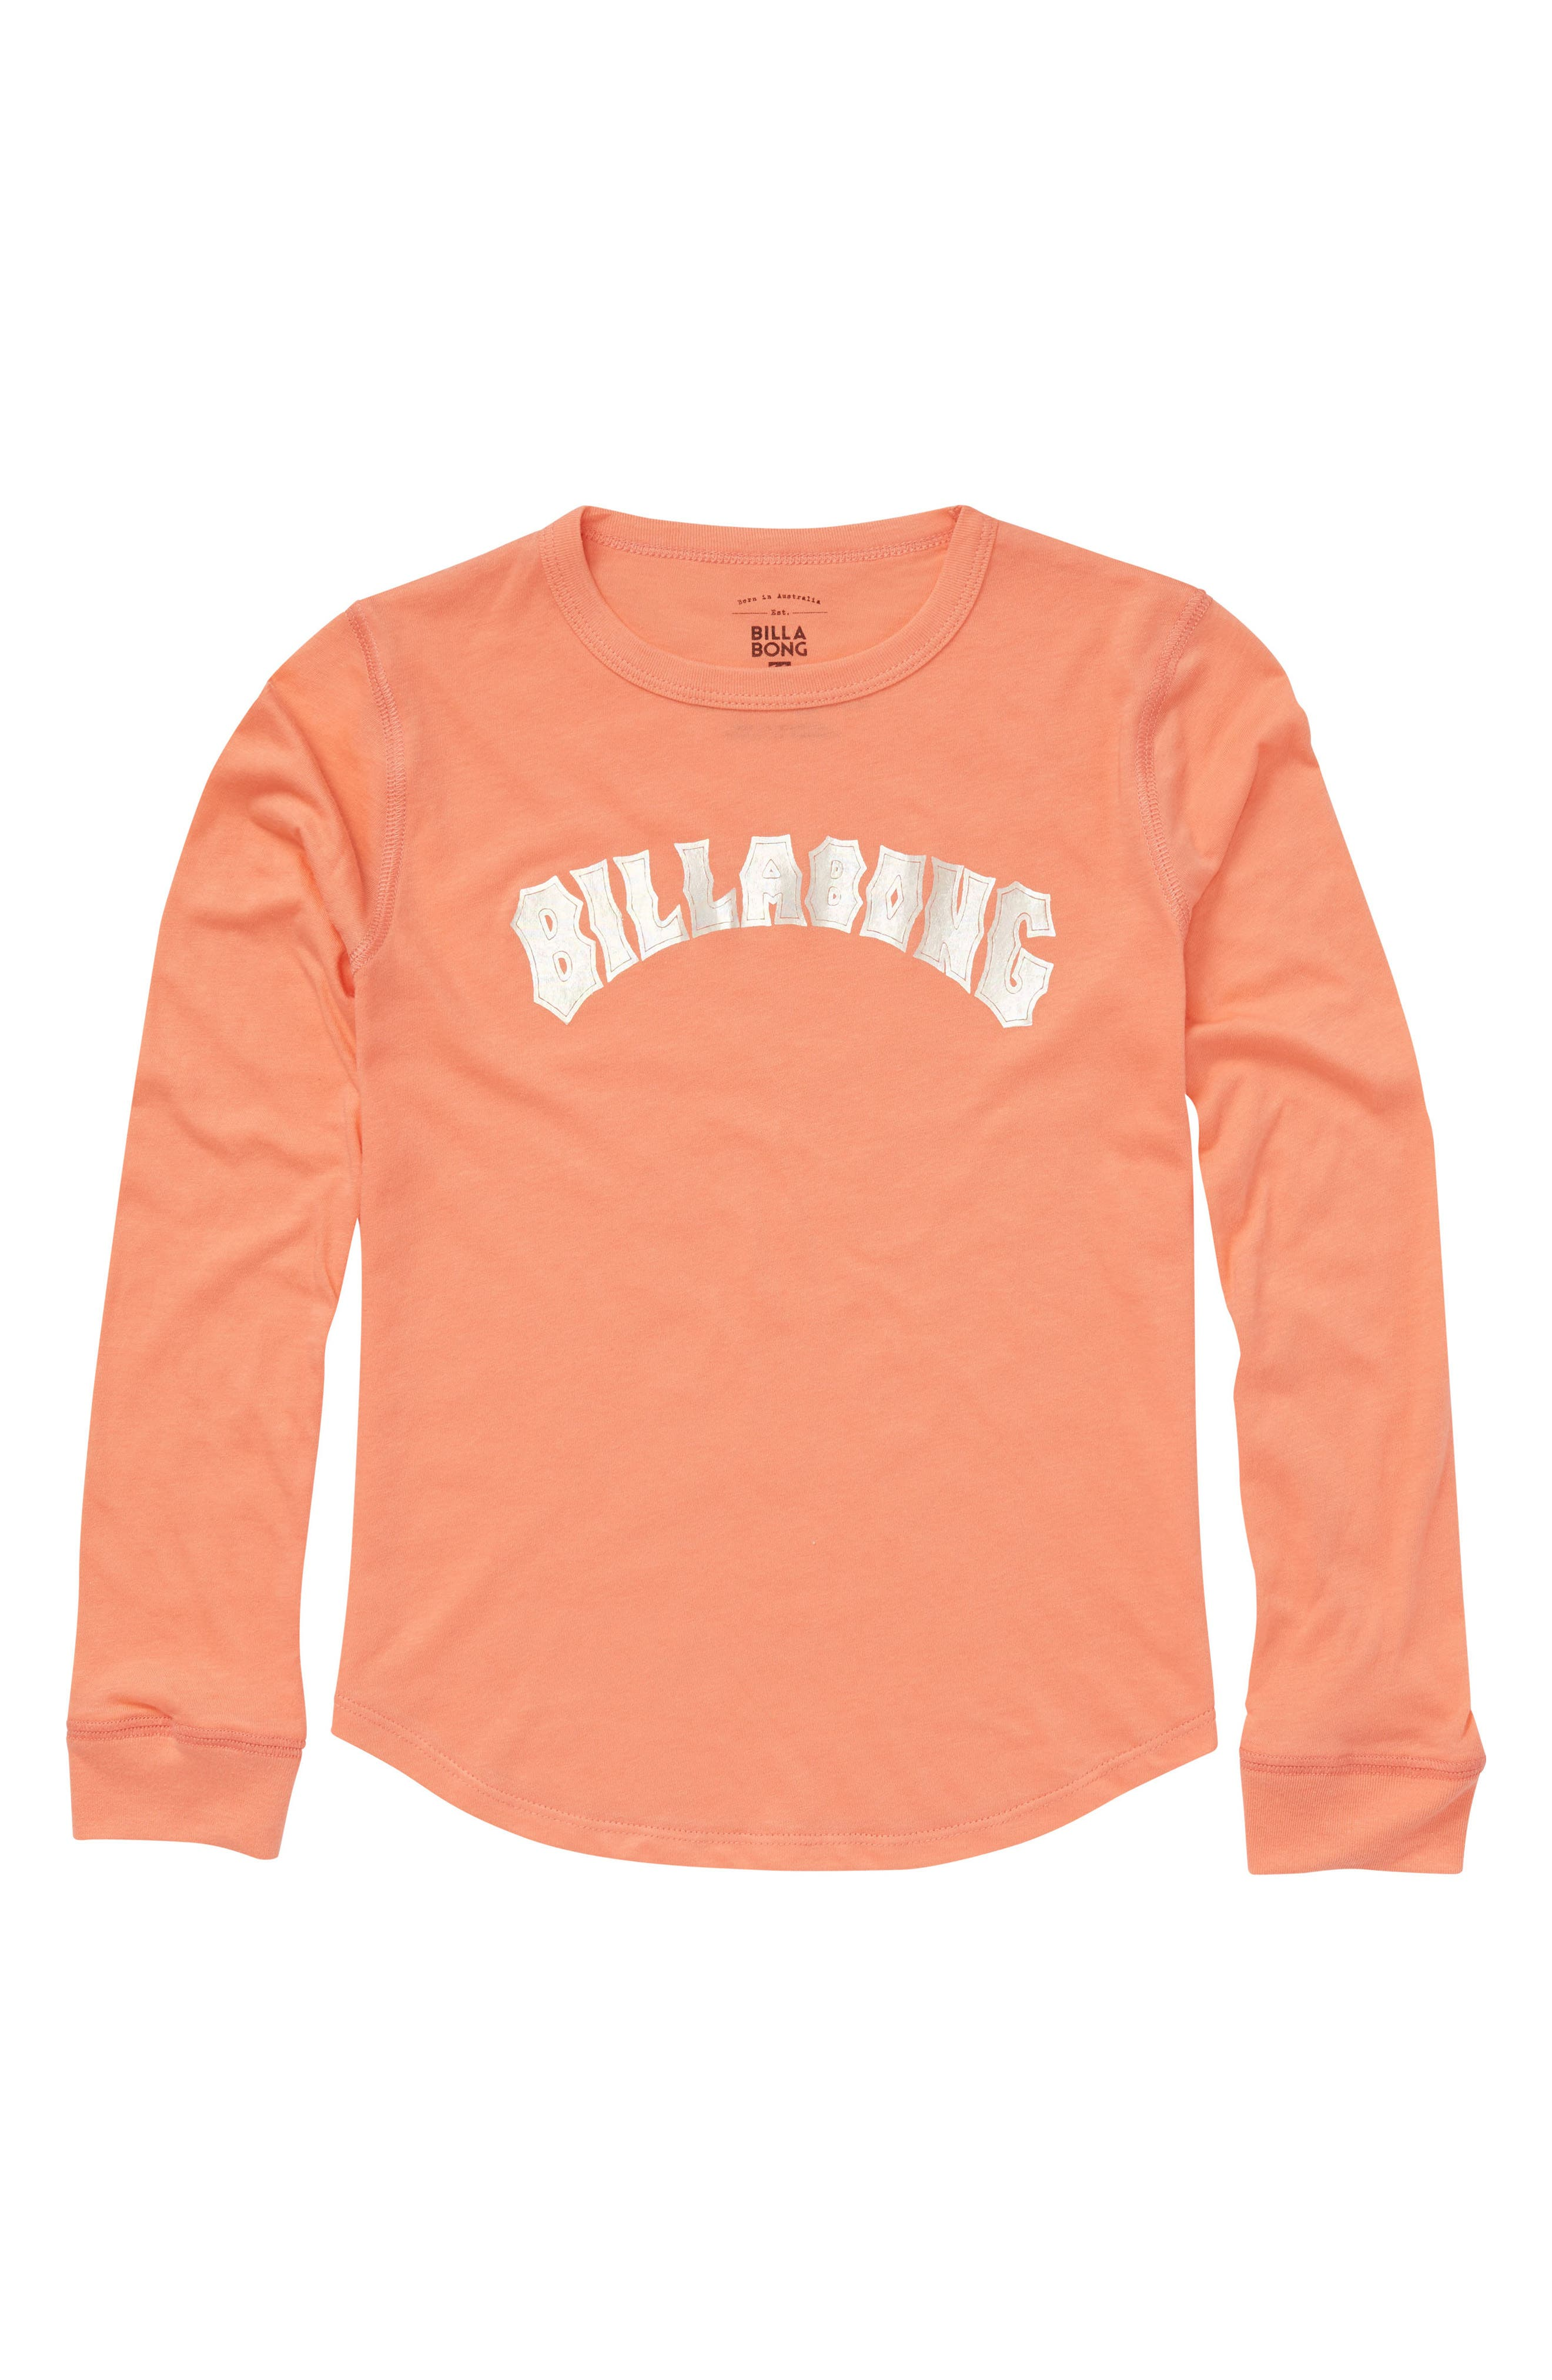 Heritage Logo Tee,                         Main,                         color, Sunkissed Coral